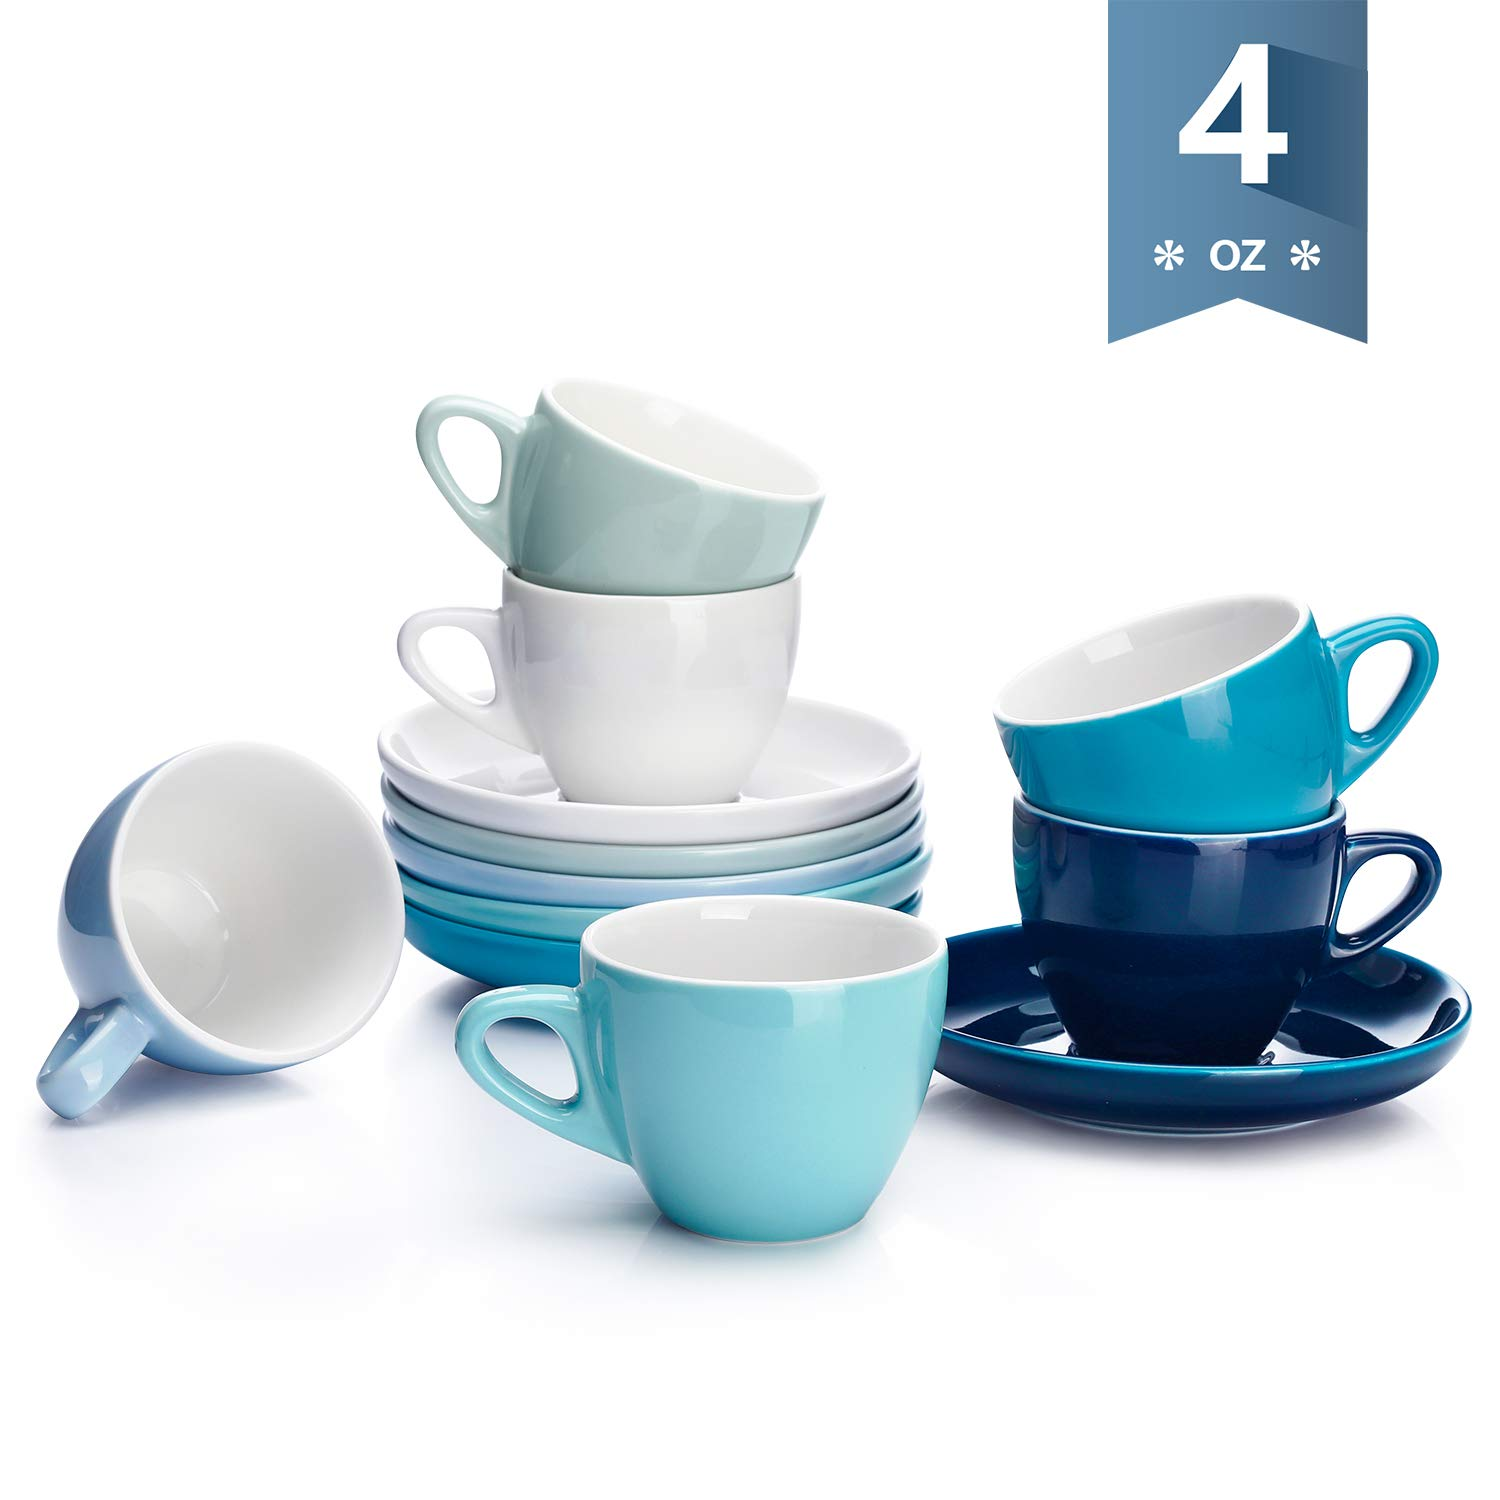 Sweese 402.003 Espresso Cups with Saucers, 4 Ounce Demitasse Cups, Perfect for Single or Double Espresso, Cappuccino, Latte and Tea - Set of 6, Cool Assorted Colors